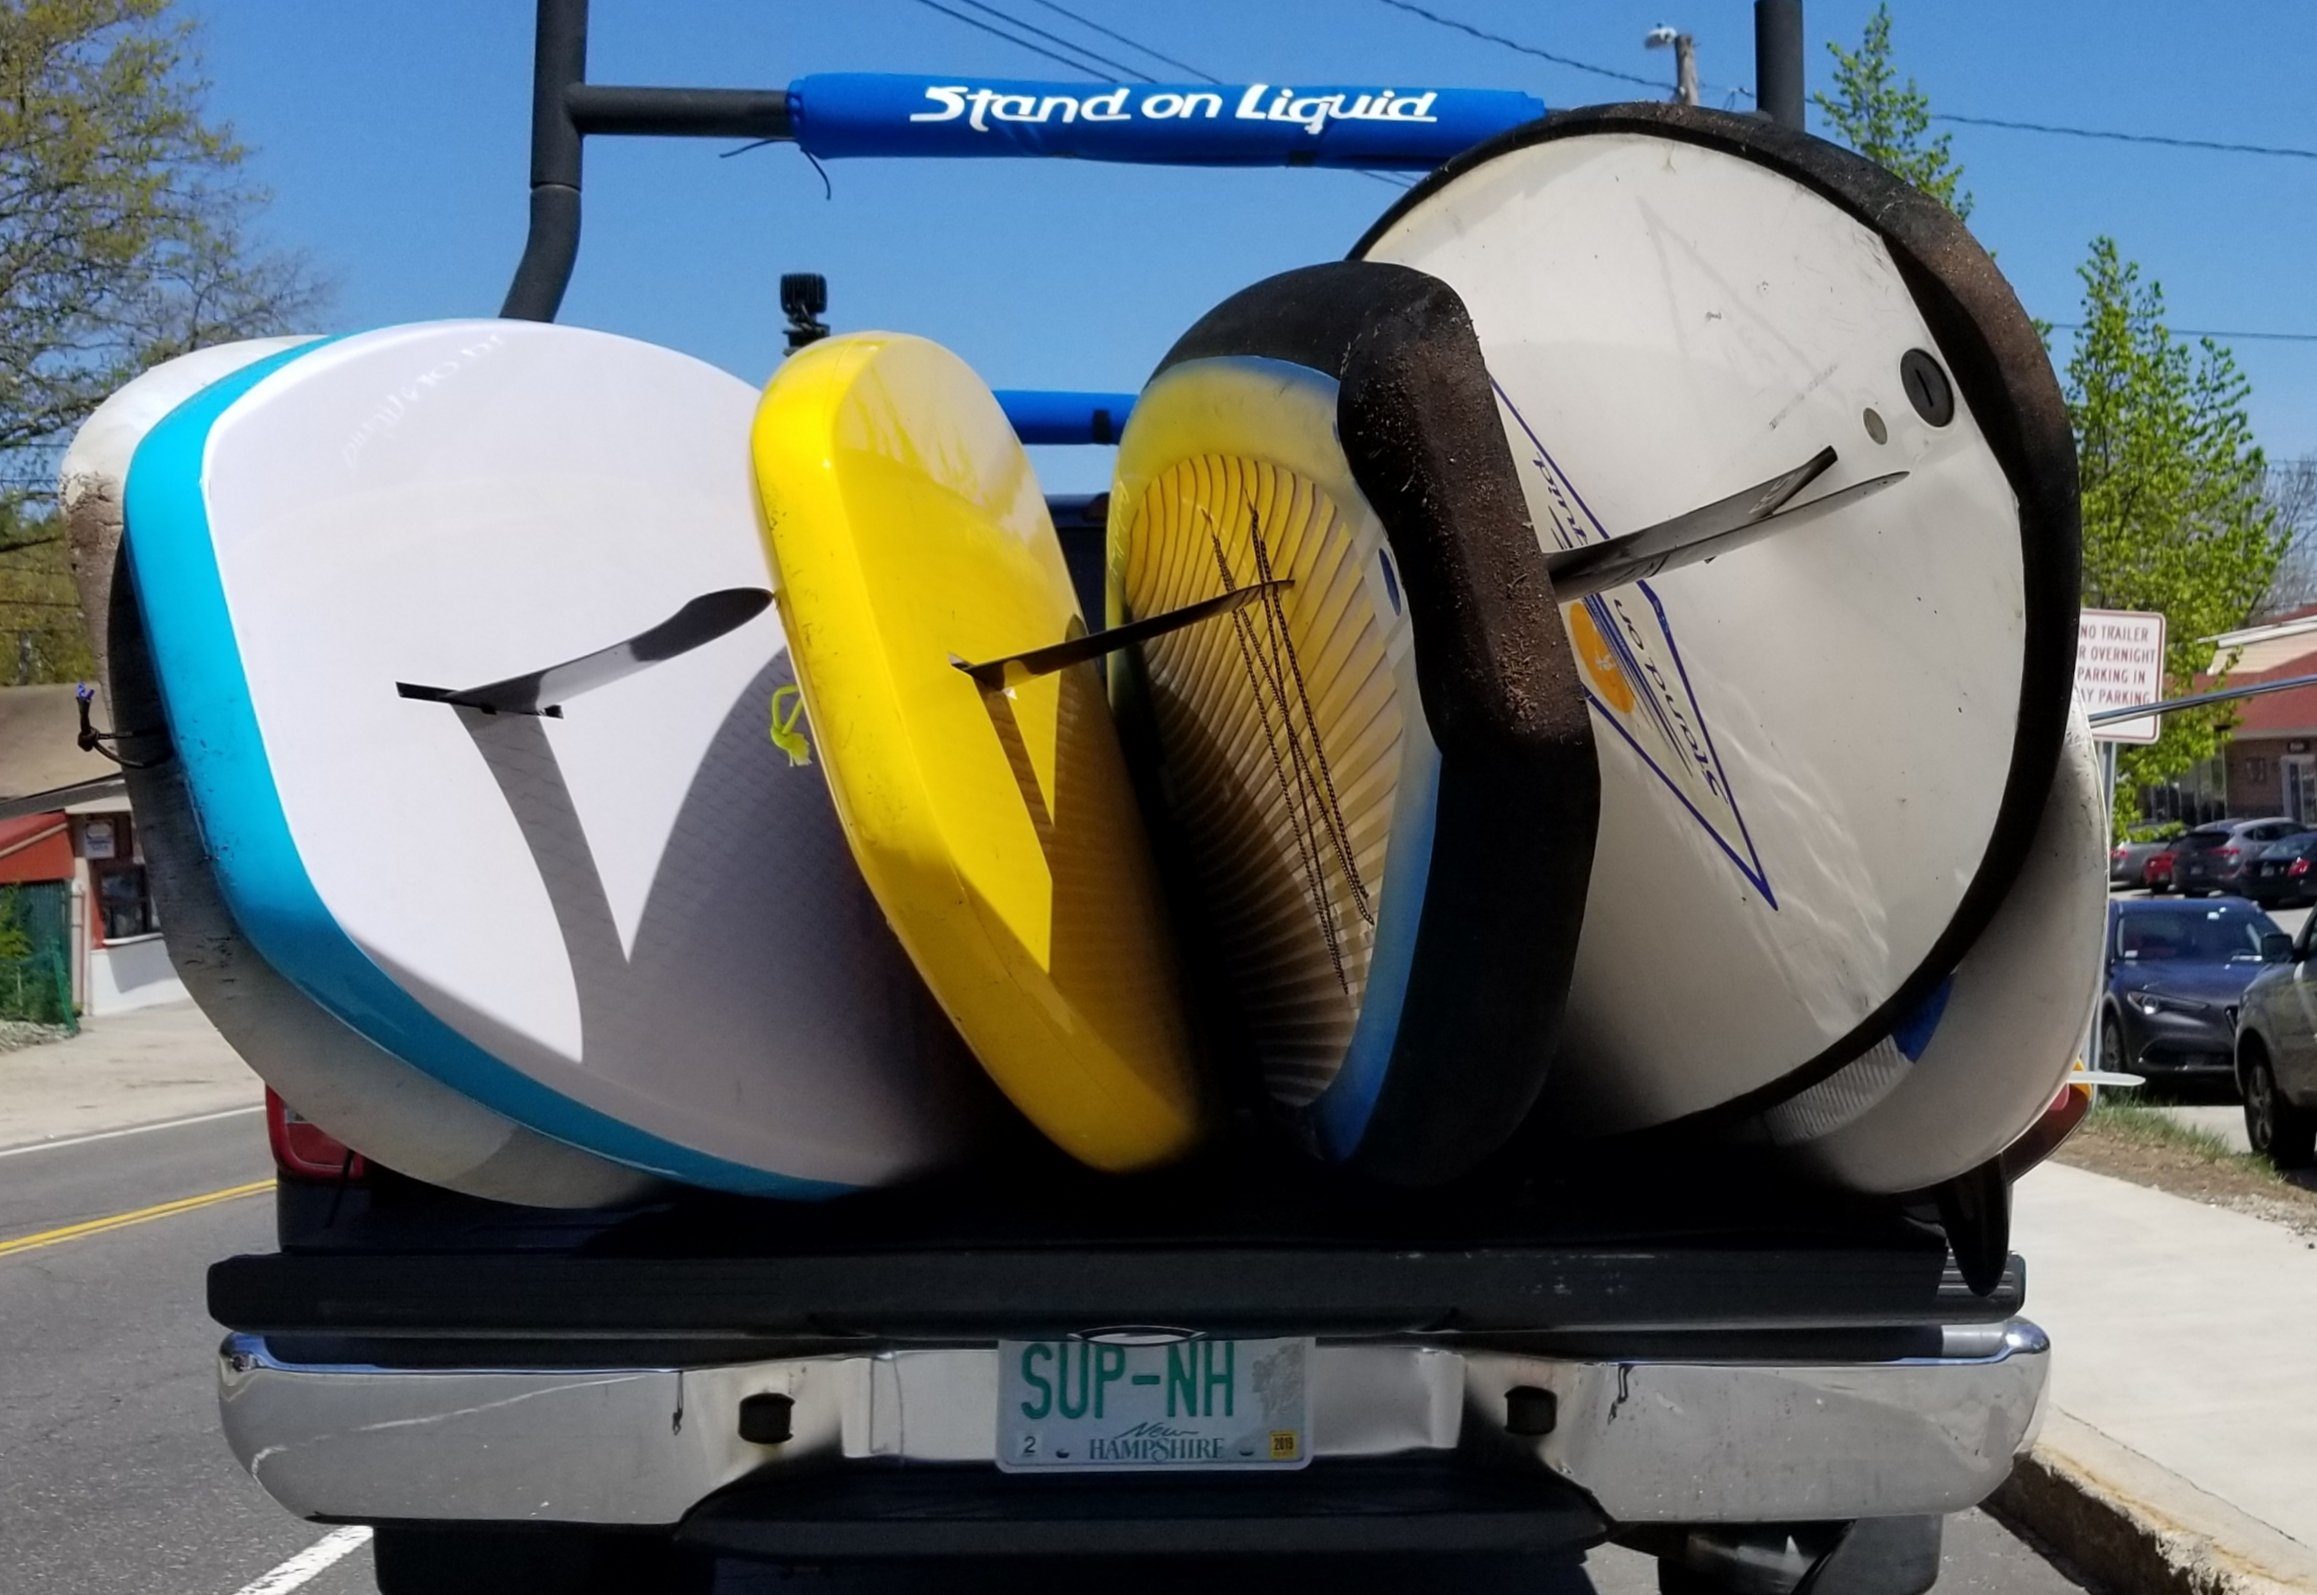 Paddleboard rental at SUPNH